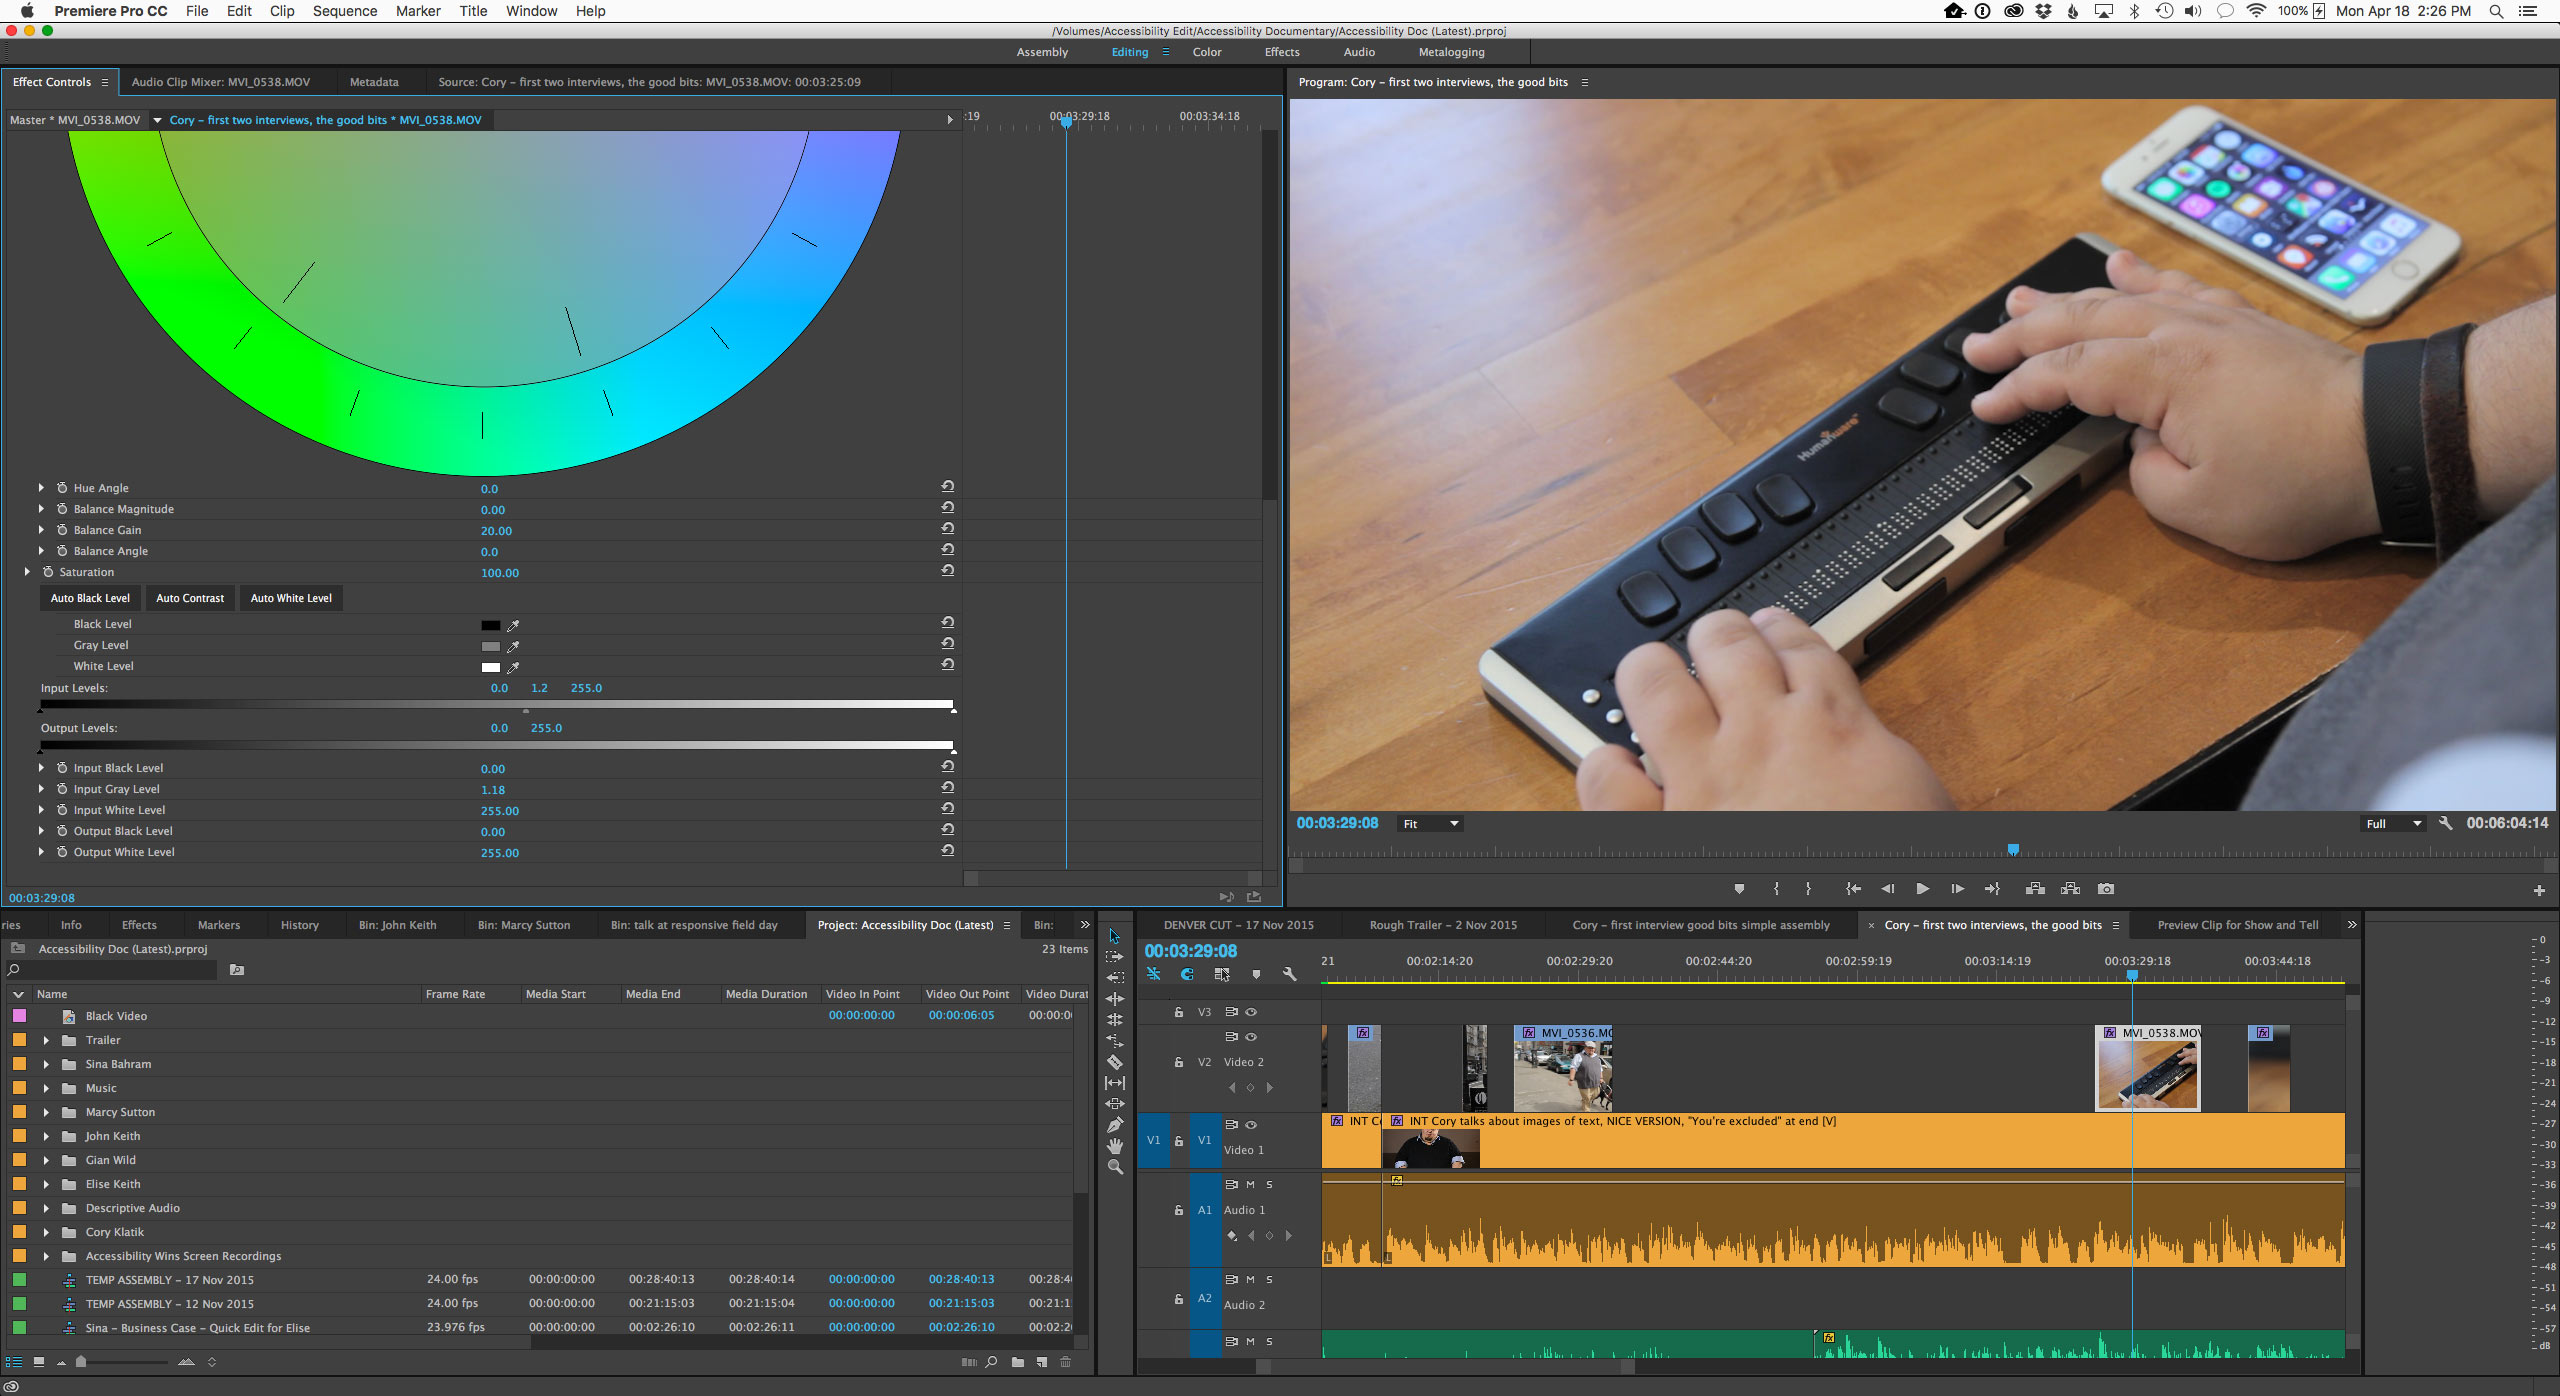 Screenshot: Editing video in Adobe Premiere. A braille keyboard is shown, along with an iPhone 6S.